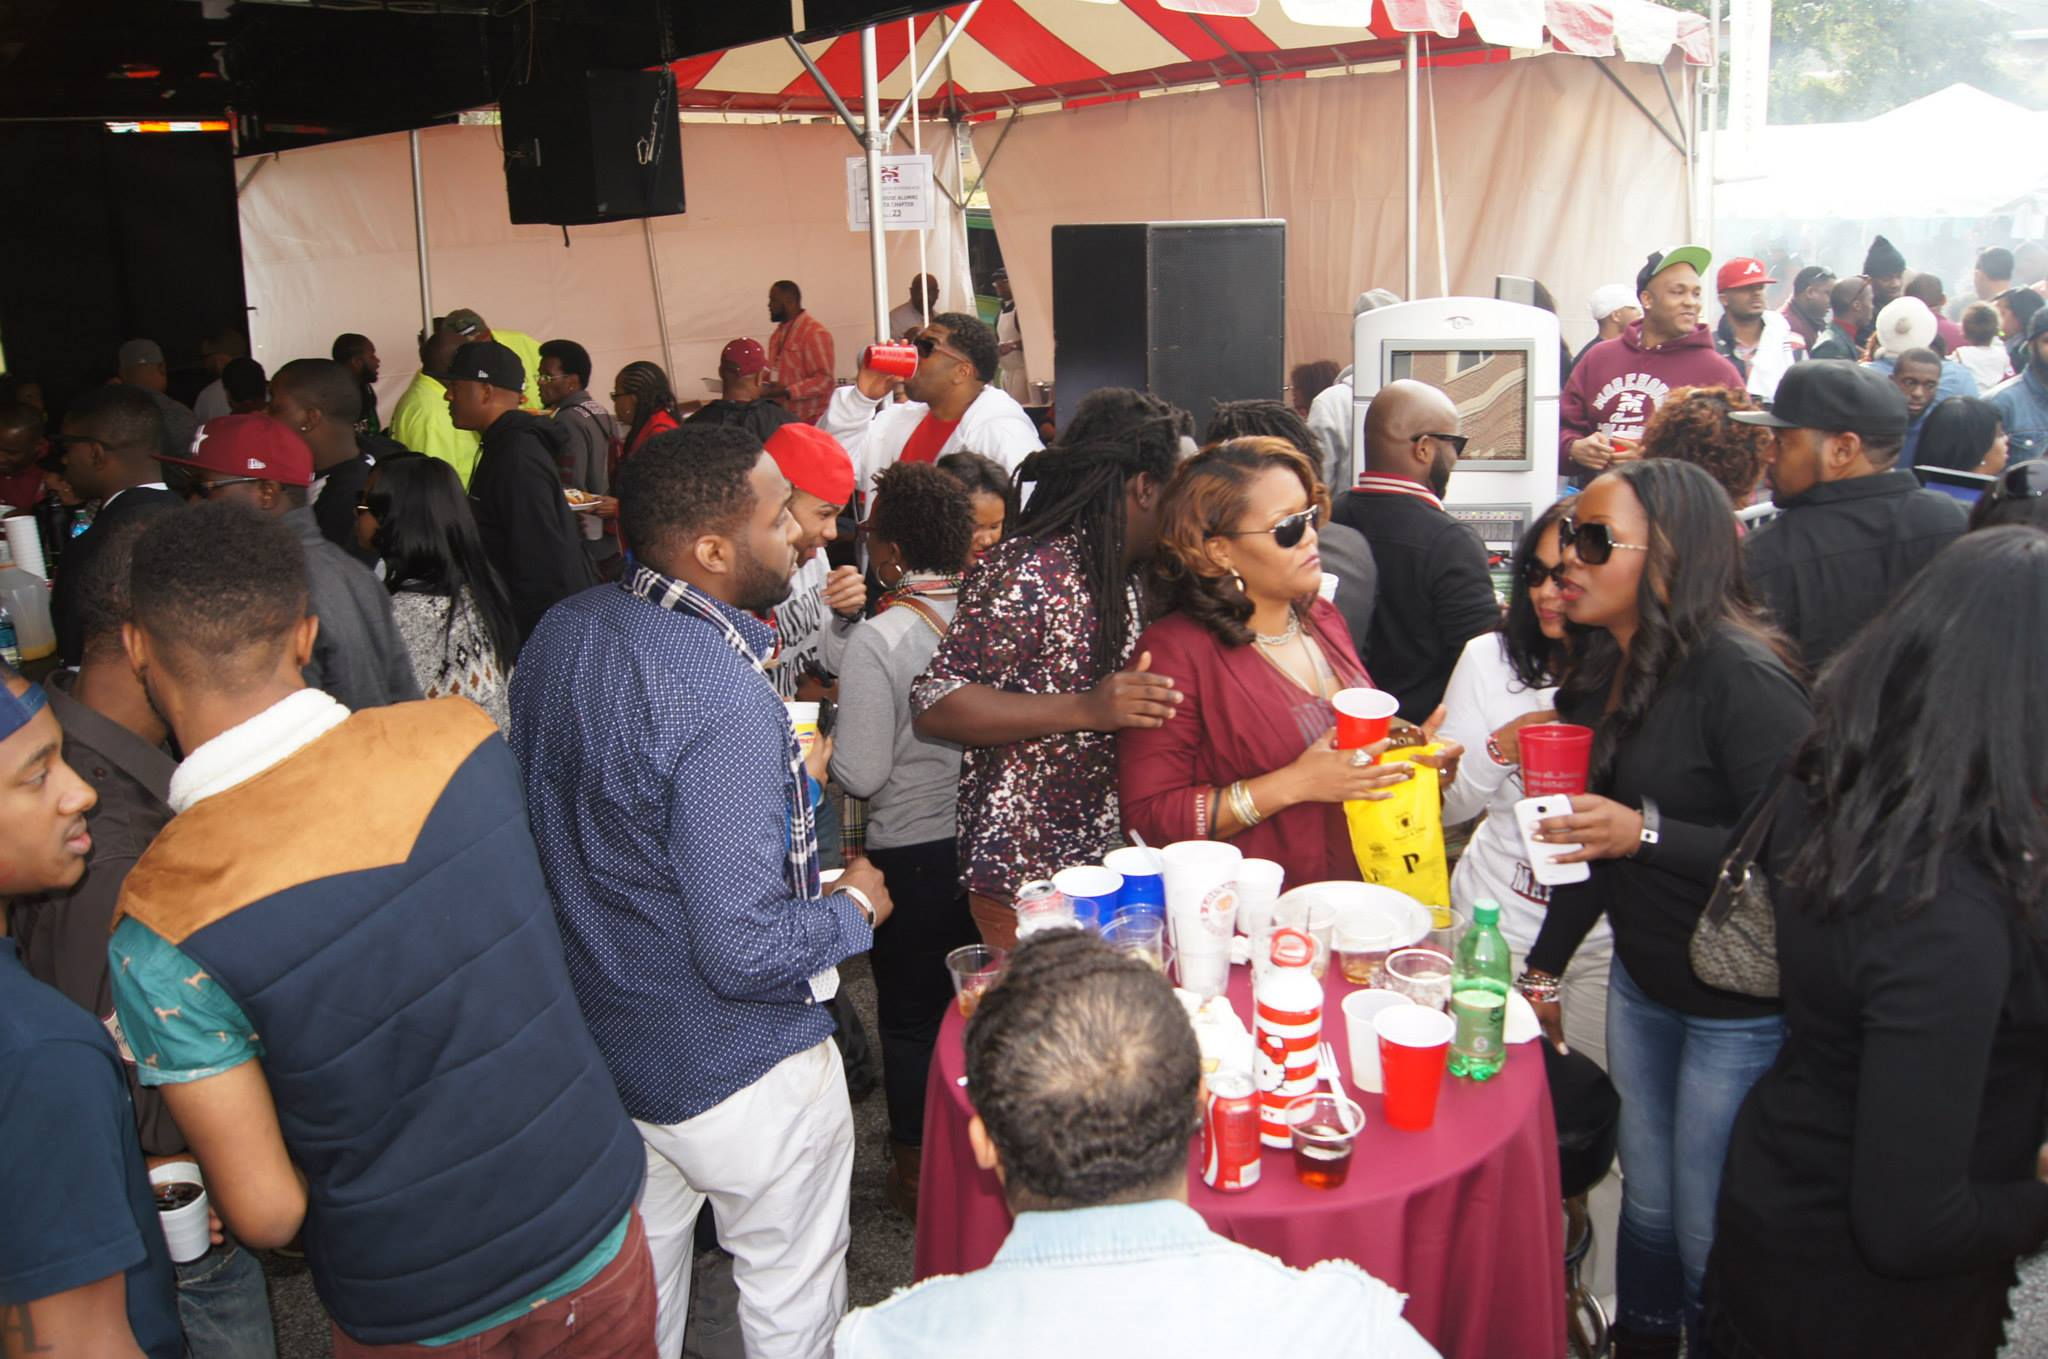 2014 Morehouse Homecoming Alumni Tailgate Tent